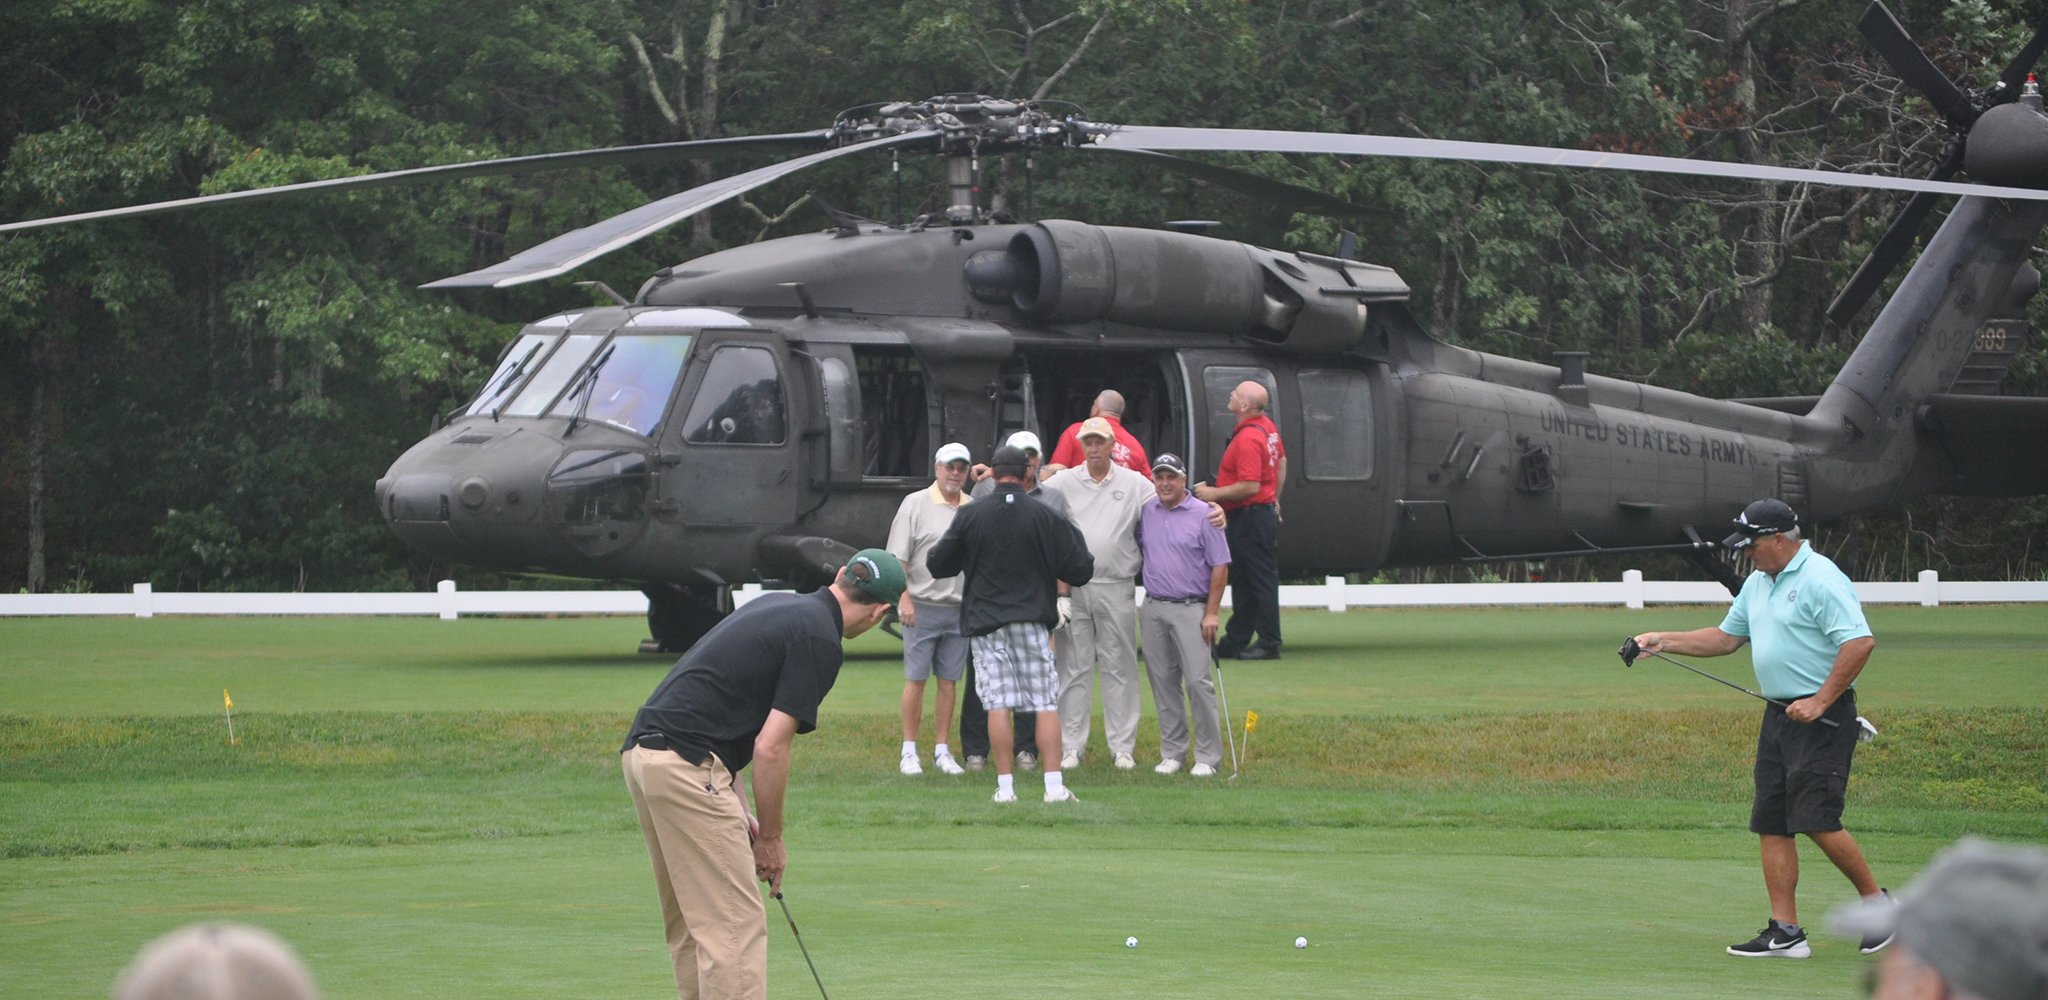 Blackhawk helicopter on Sandwich Hollows Golf Club on Cape Cod. The helicopter was flown in to support our Veteran's at the Veteran's Top Shot Invitational